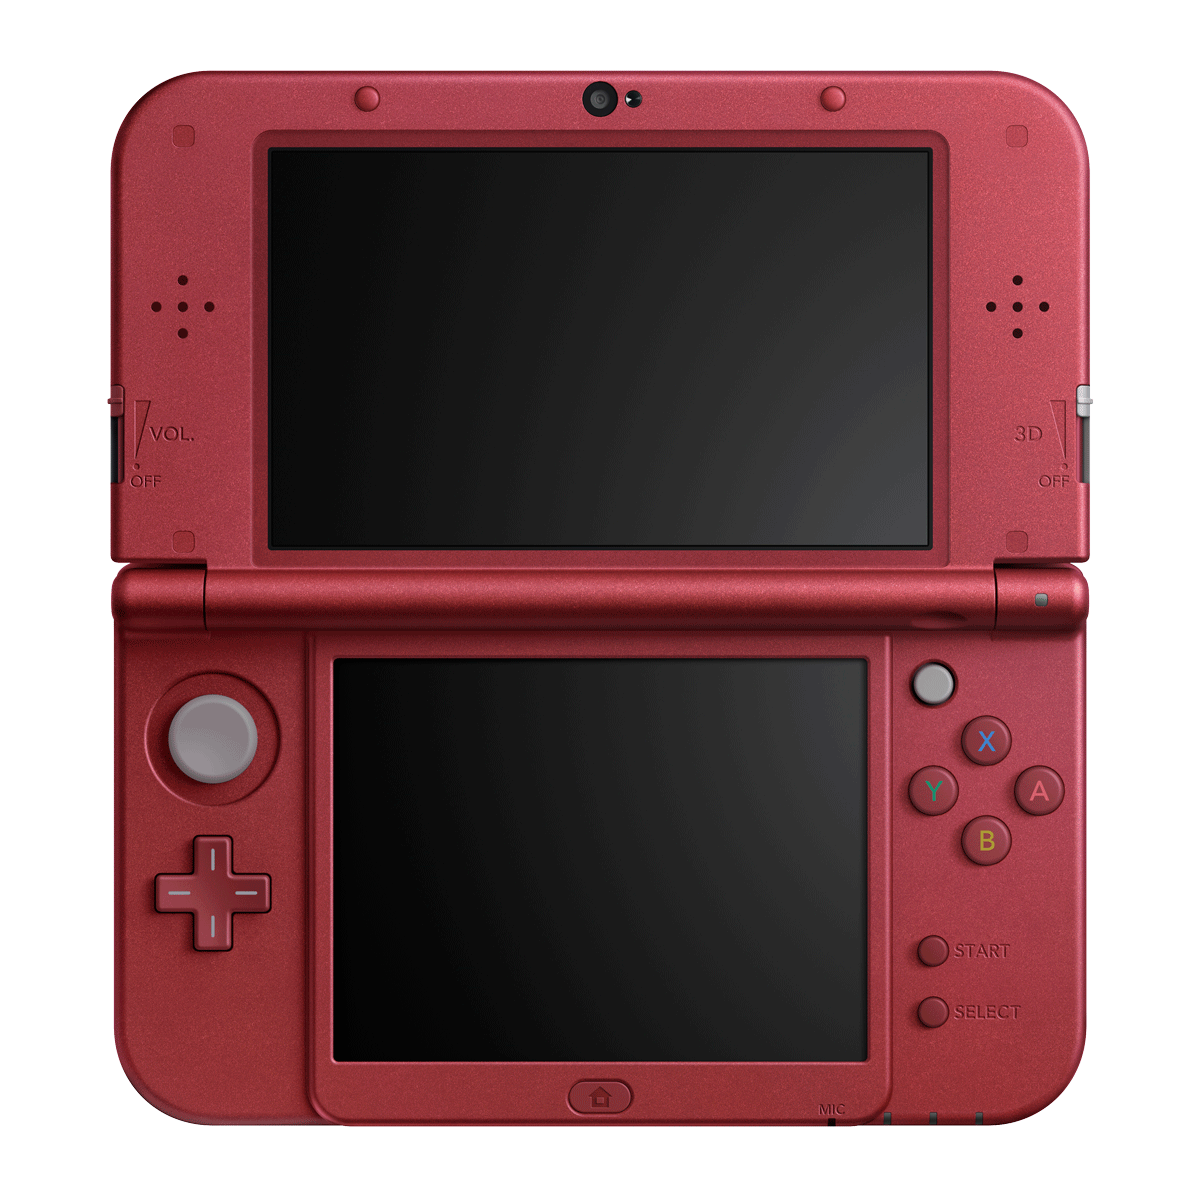 3ds drawing iphone. Aesthetically speaking what is